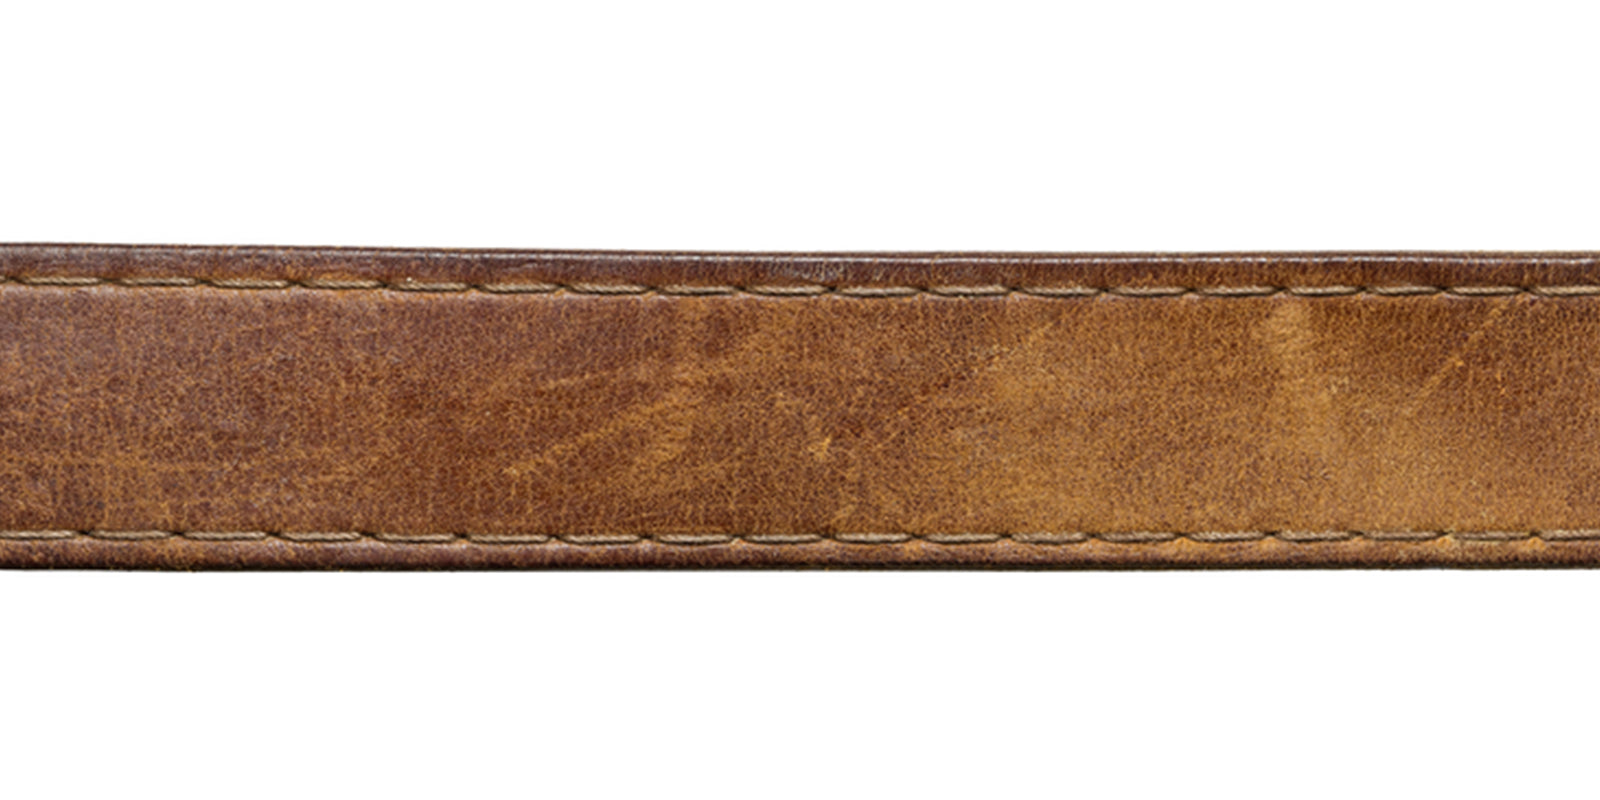 Leather of a belt